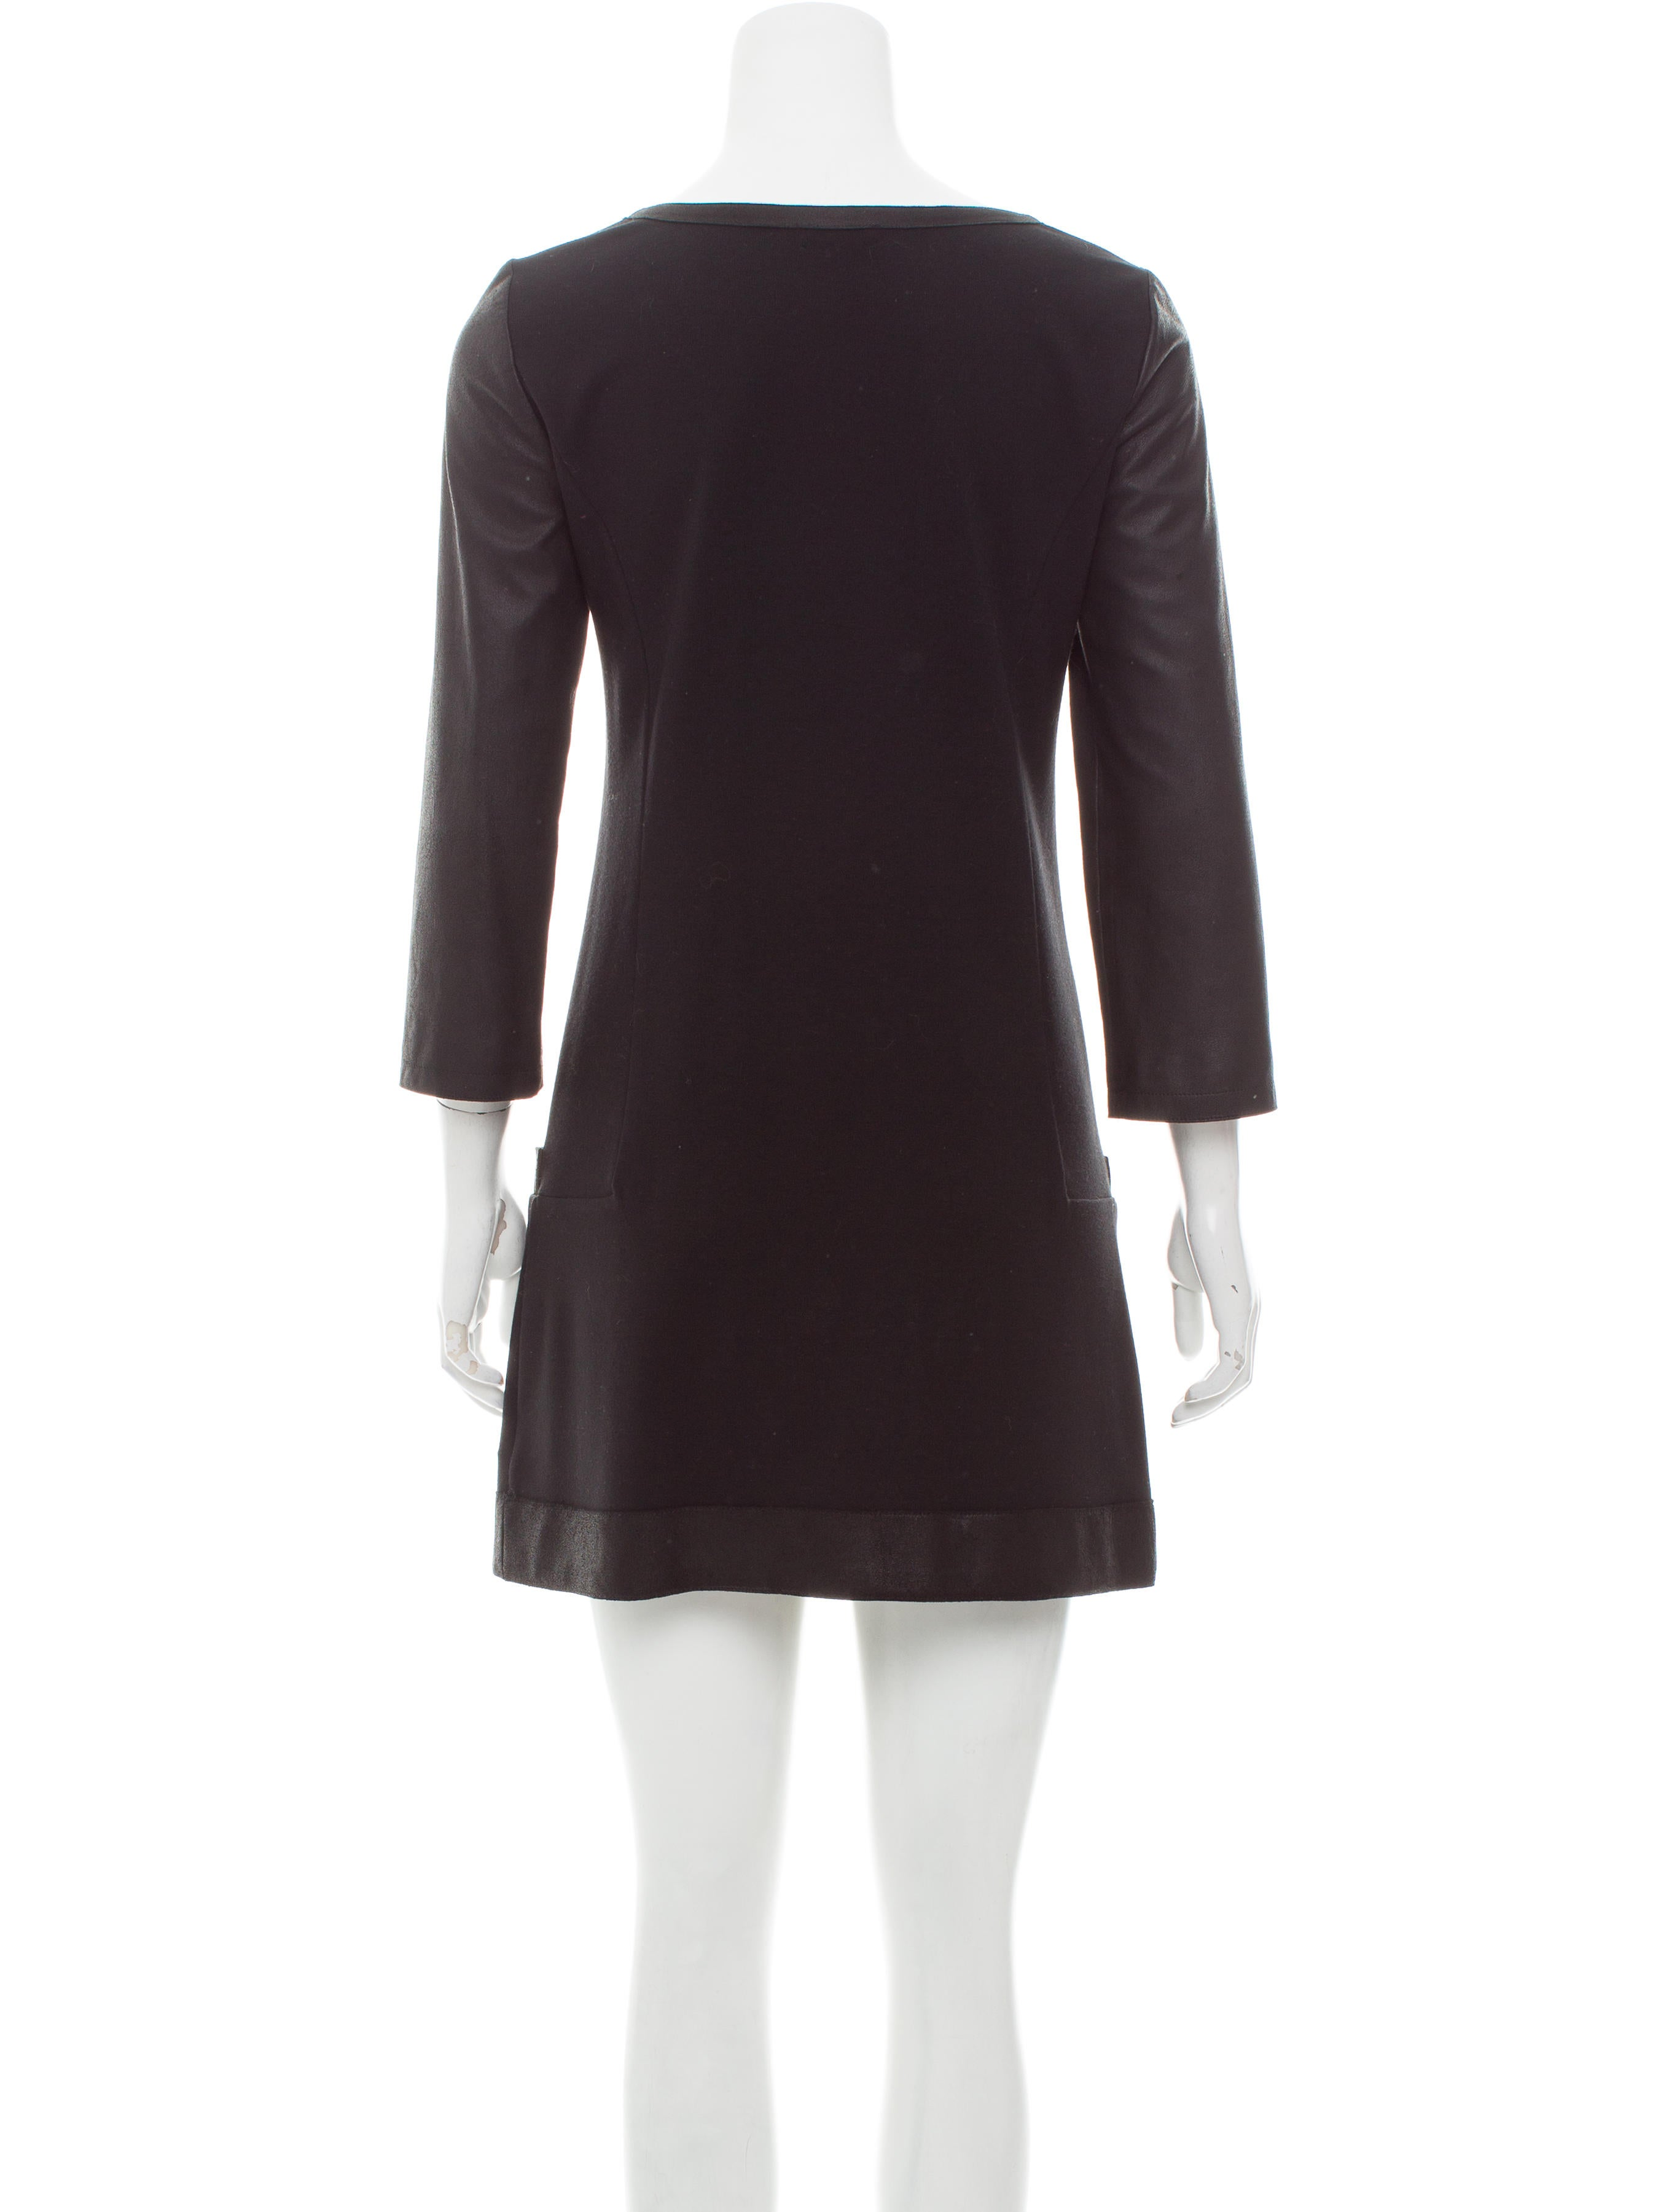 Theory Leather Trimmed Mini Dress Clothing WTE25568  : WTE255683enlarged from www.therealreal.com size 2730 x 3601 jpeg 301kB